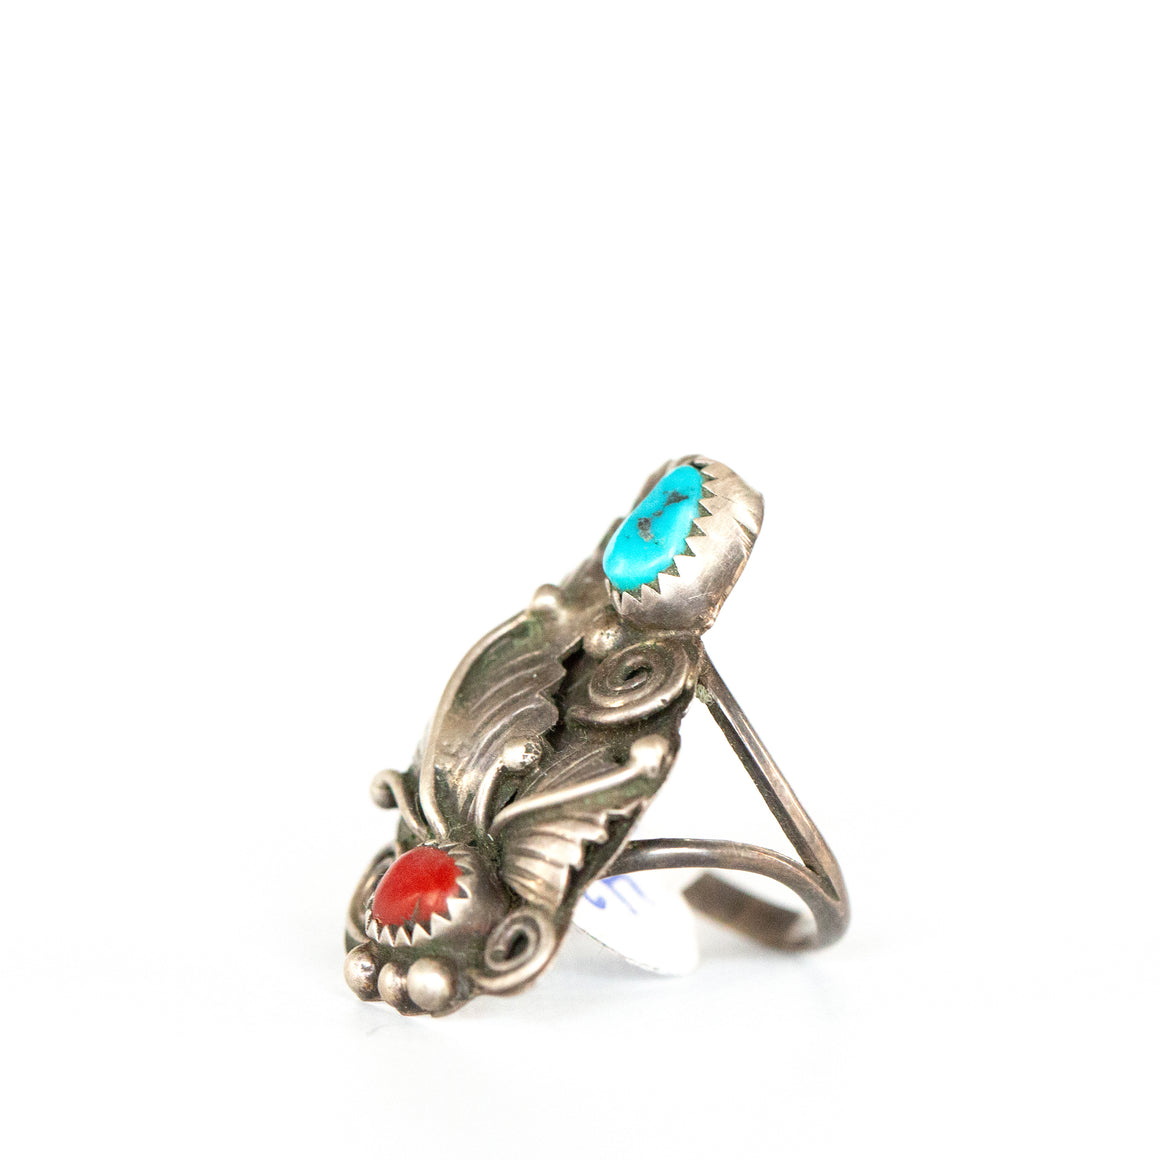 VINTAGE JEWELRY | STERLING TURQUOISE & CORAL FLOWER RING (SIZE 6)